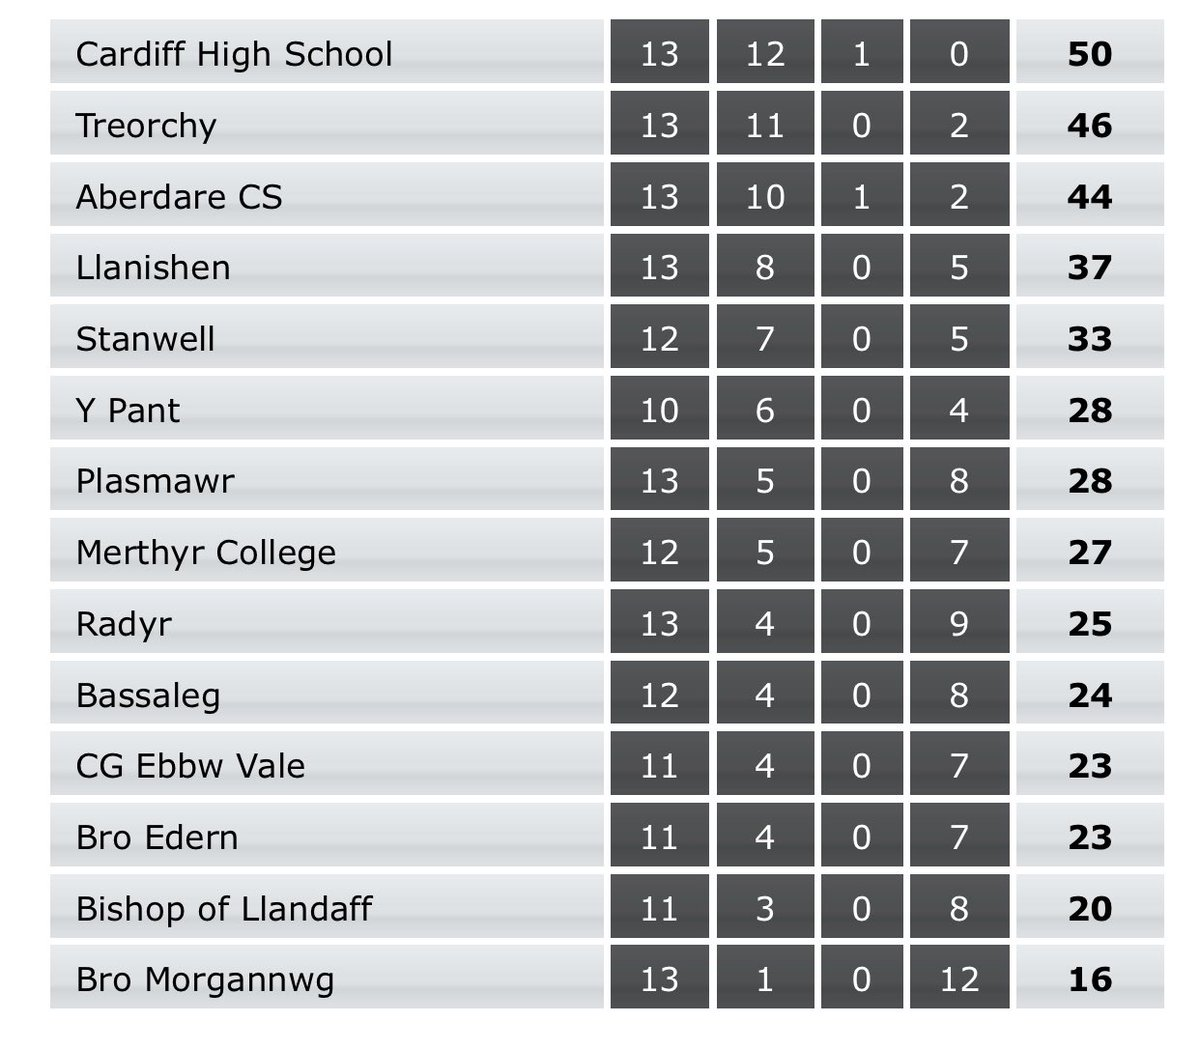 Congratulations to @PEatCardiffHigh on winning the East Wales Premier League. Nothing but praise for this league and all the teams in it.  Good luck next week vs Coleg Si Gar 2XV in champion of champions. We will be there supporting you